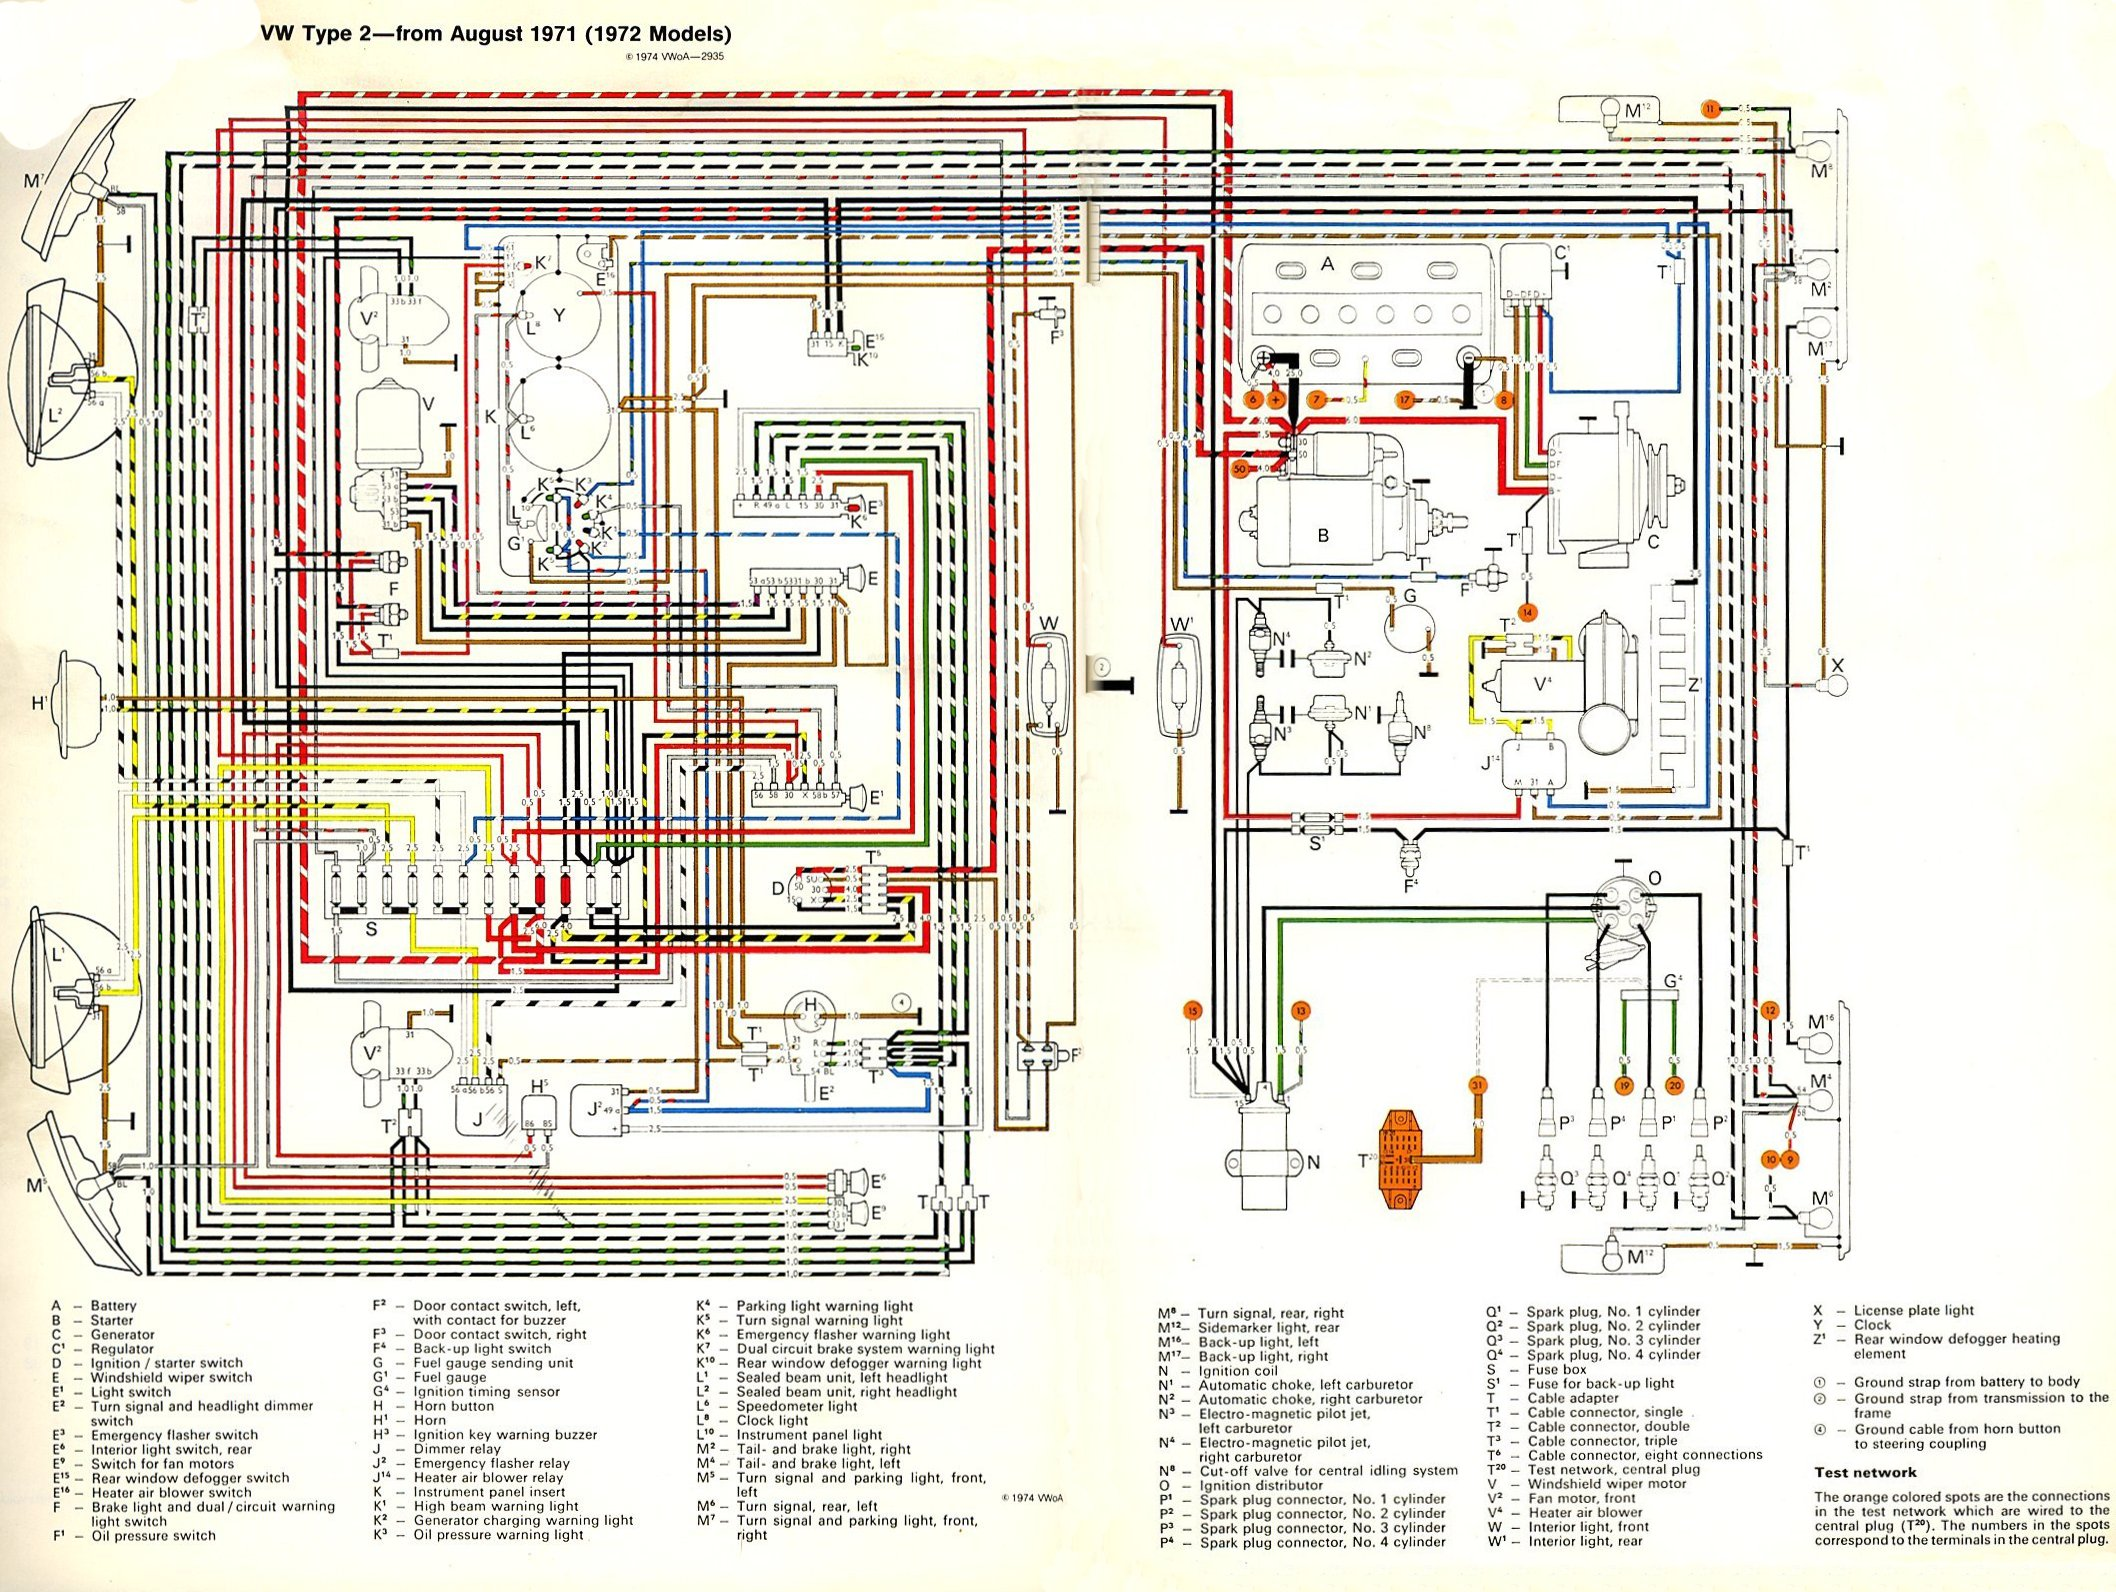 bus_1972_wiring 1972 corvette wiring diagram 1972 corvette ac wiring diagram Wiring Harness Diagram at honlapkeszites.co